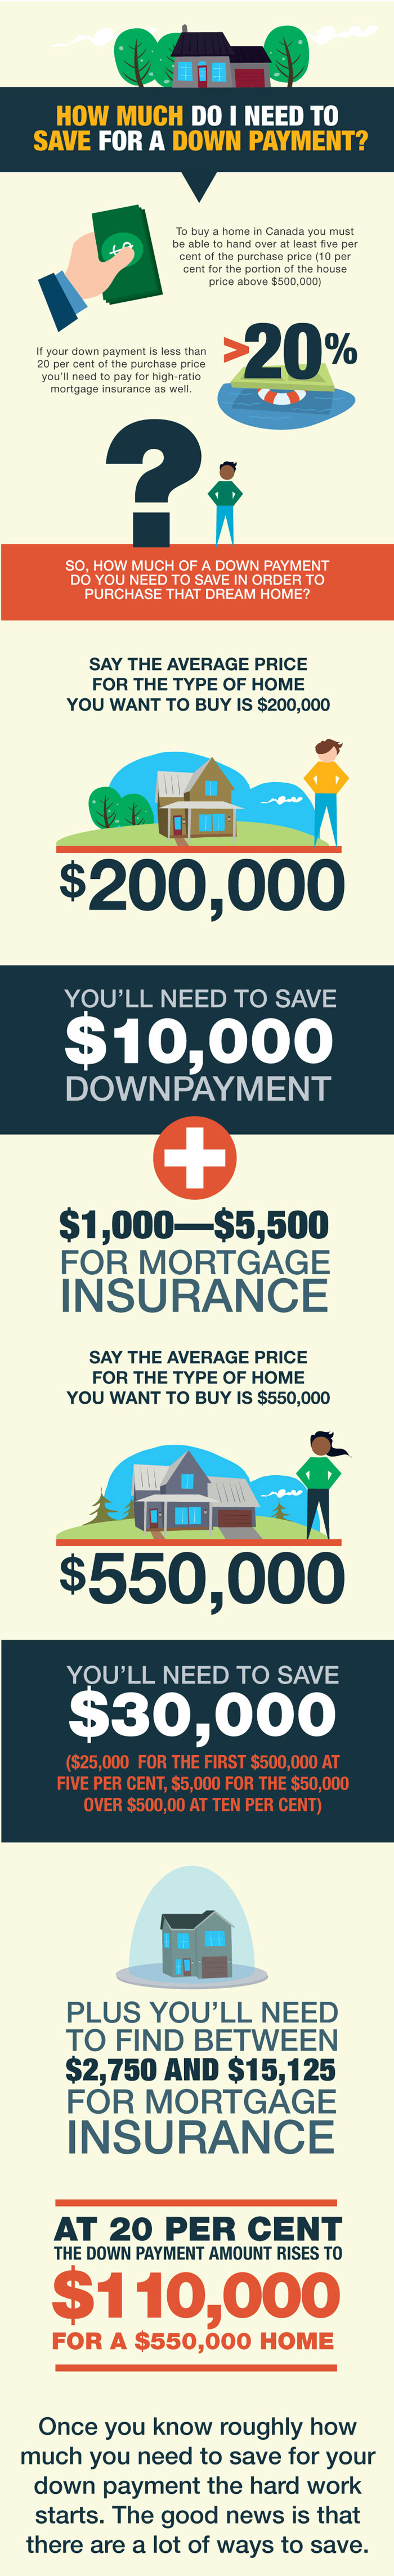 How much do I need to save for a downpayment